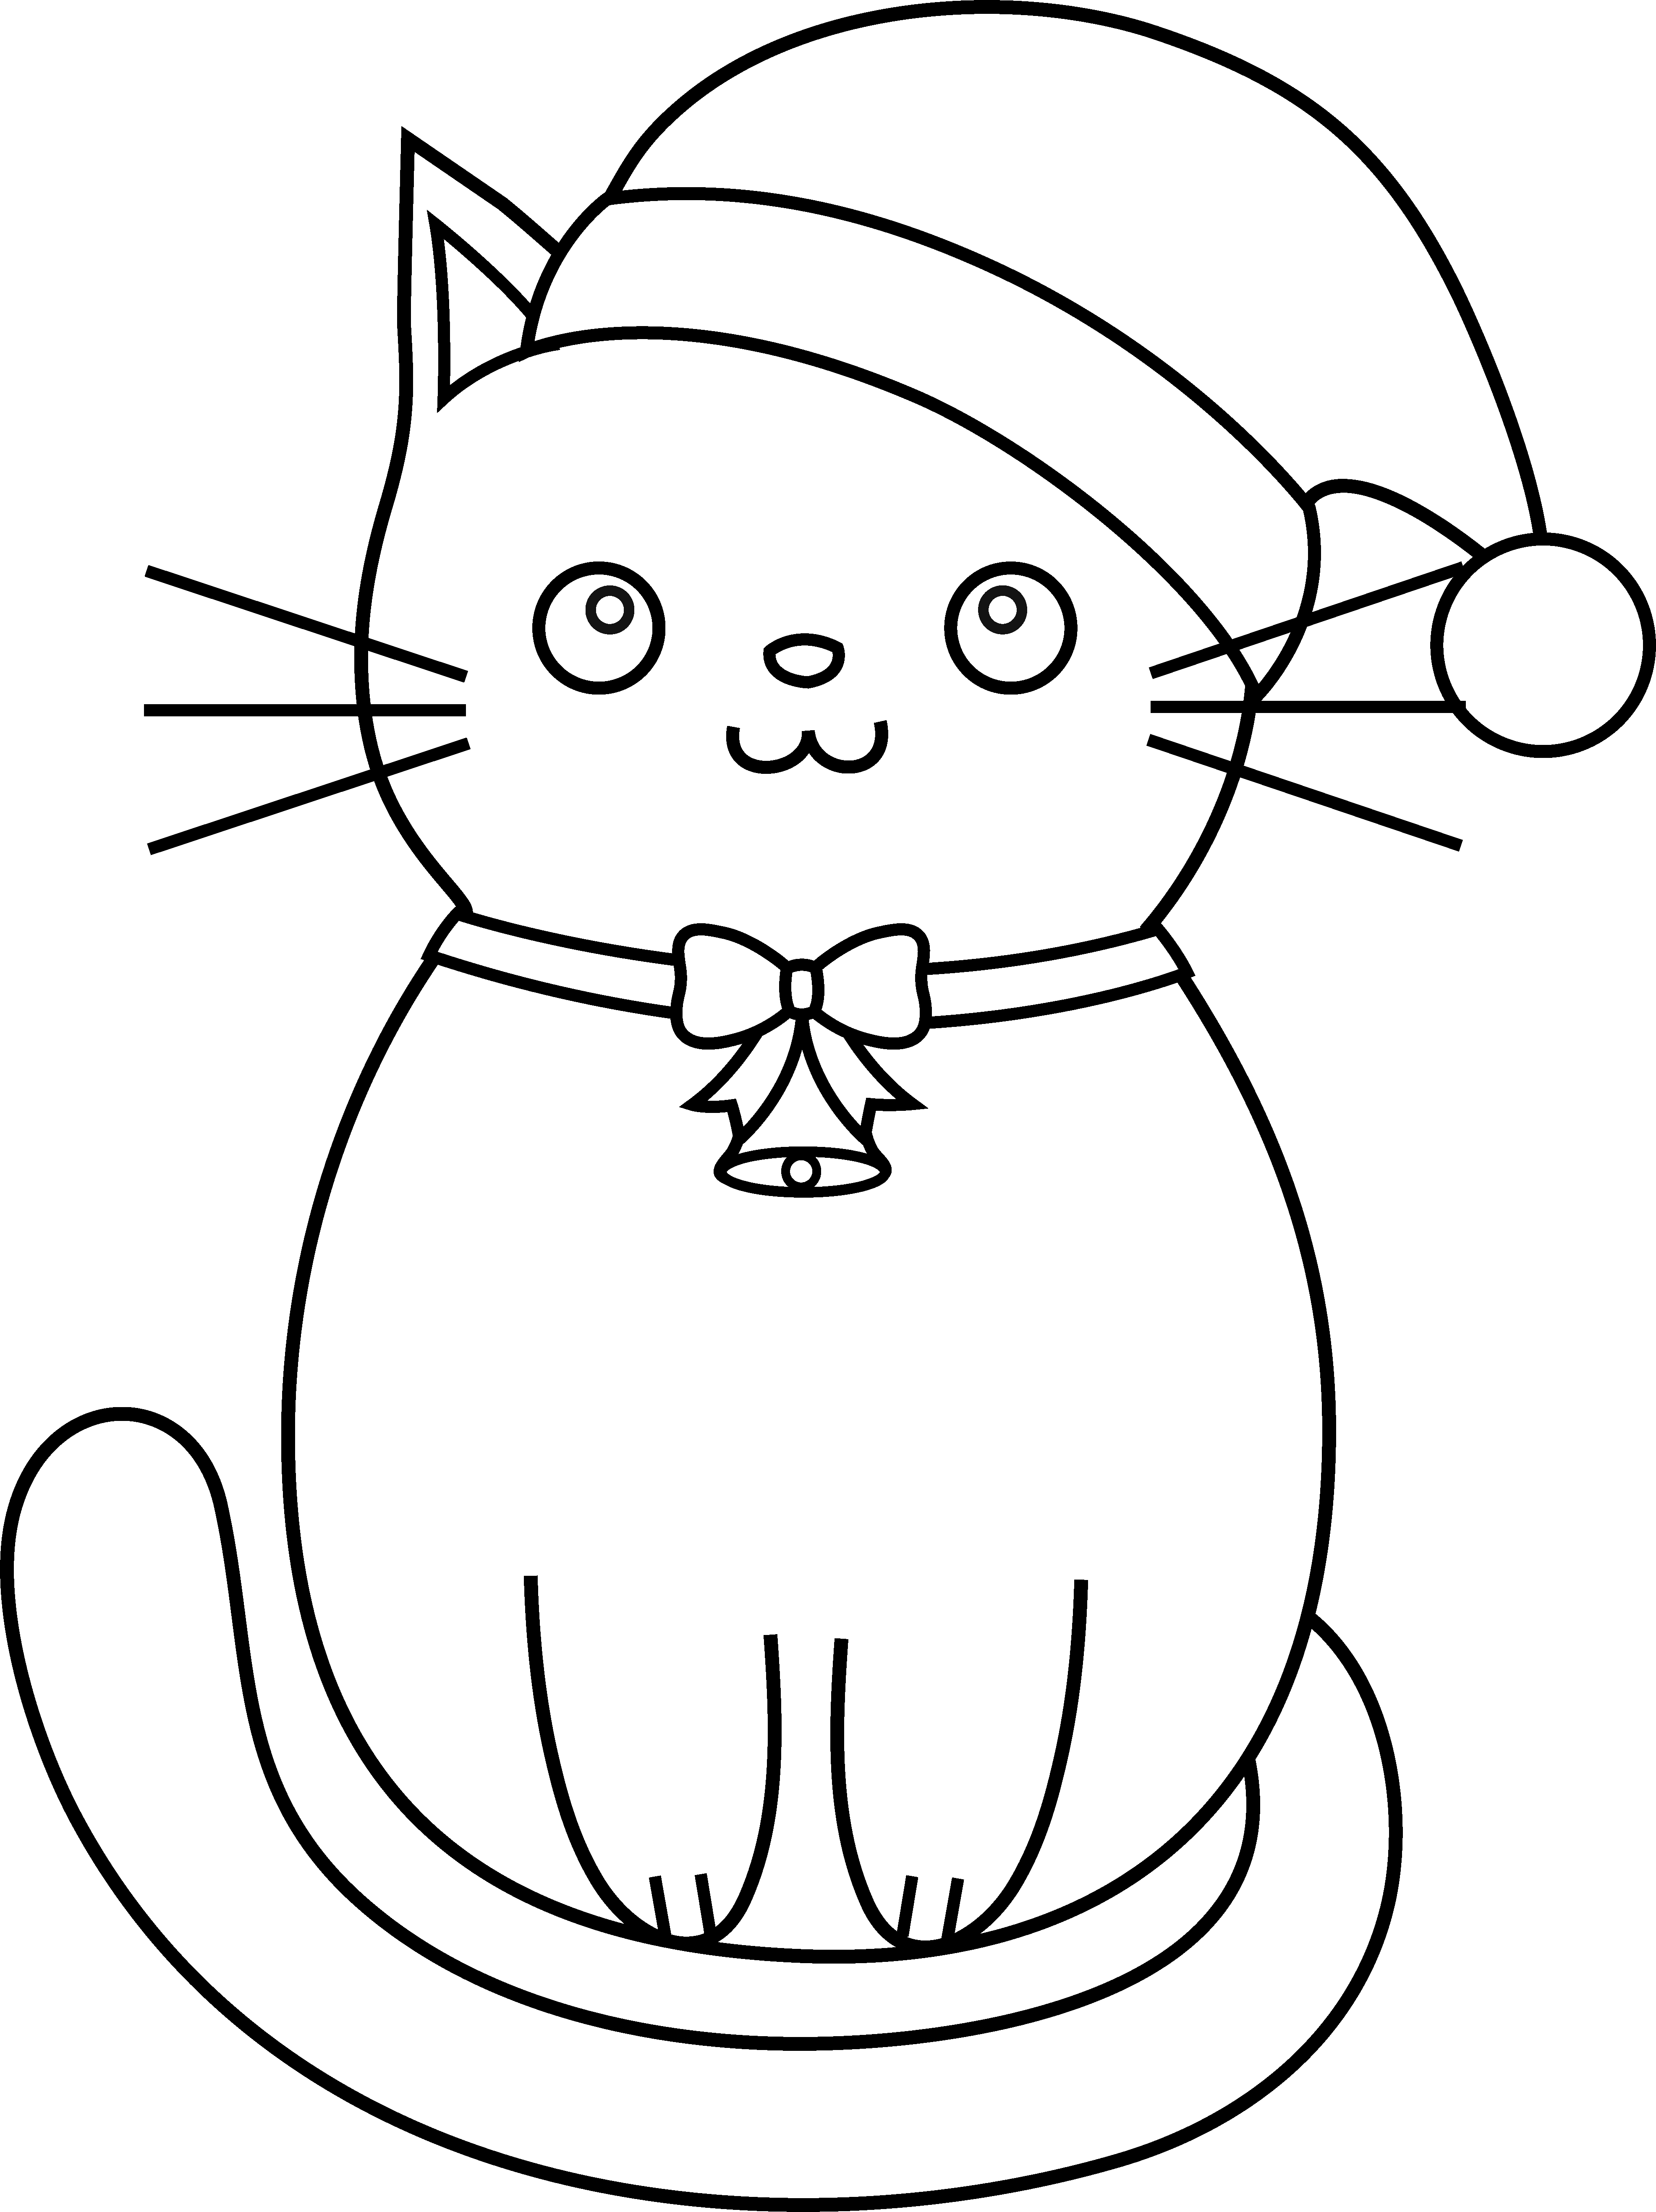 coloring pages kitty cute cat coloring pages to download and print for free coloring pages kitty